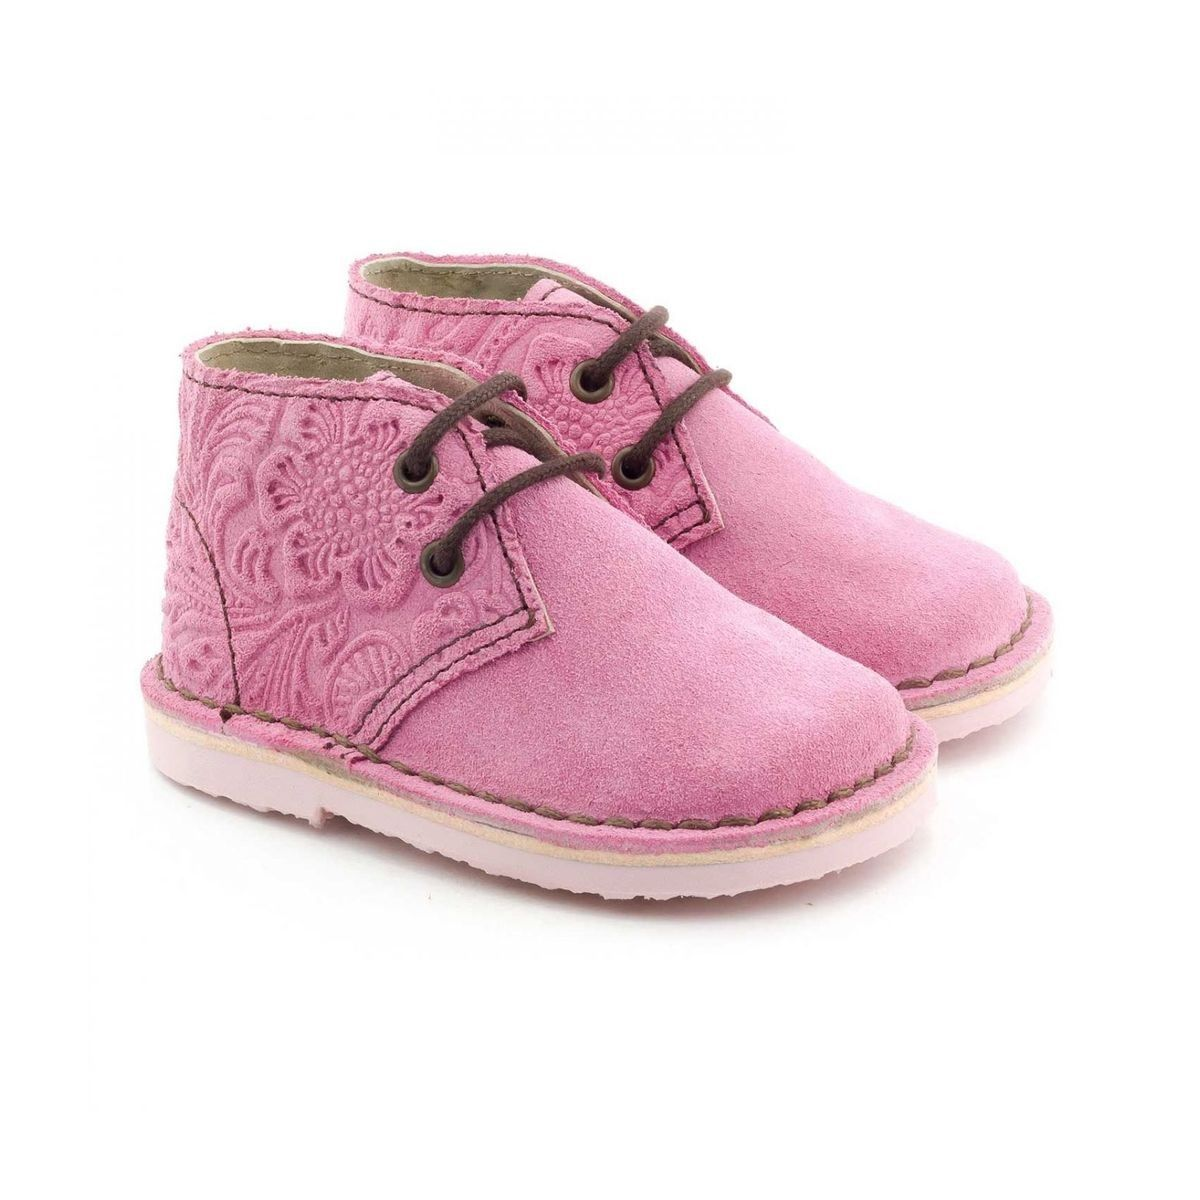 Alice Chaussure Taille30;33;25;31;34;20;27;32 Boni Fille Rose rxCBdWoe